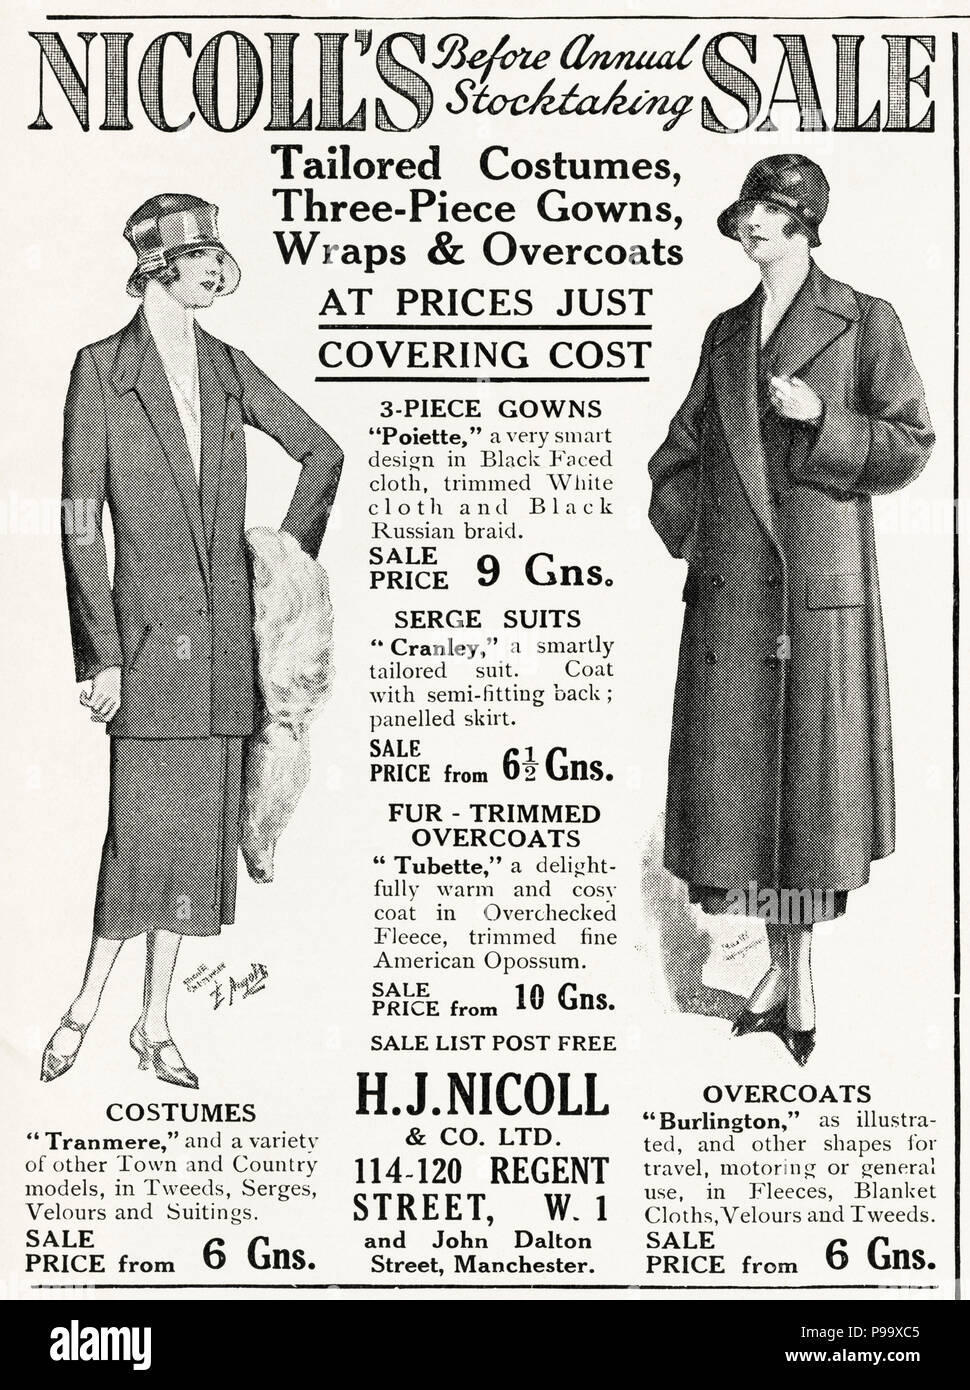 7c69045459f 1920s old vintage original advert advertising HJ Nicoll before annual  stocktaking sale of women s clothing in